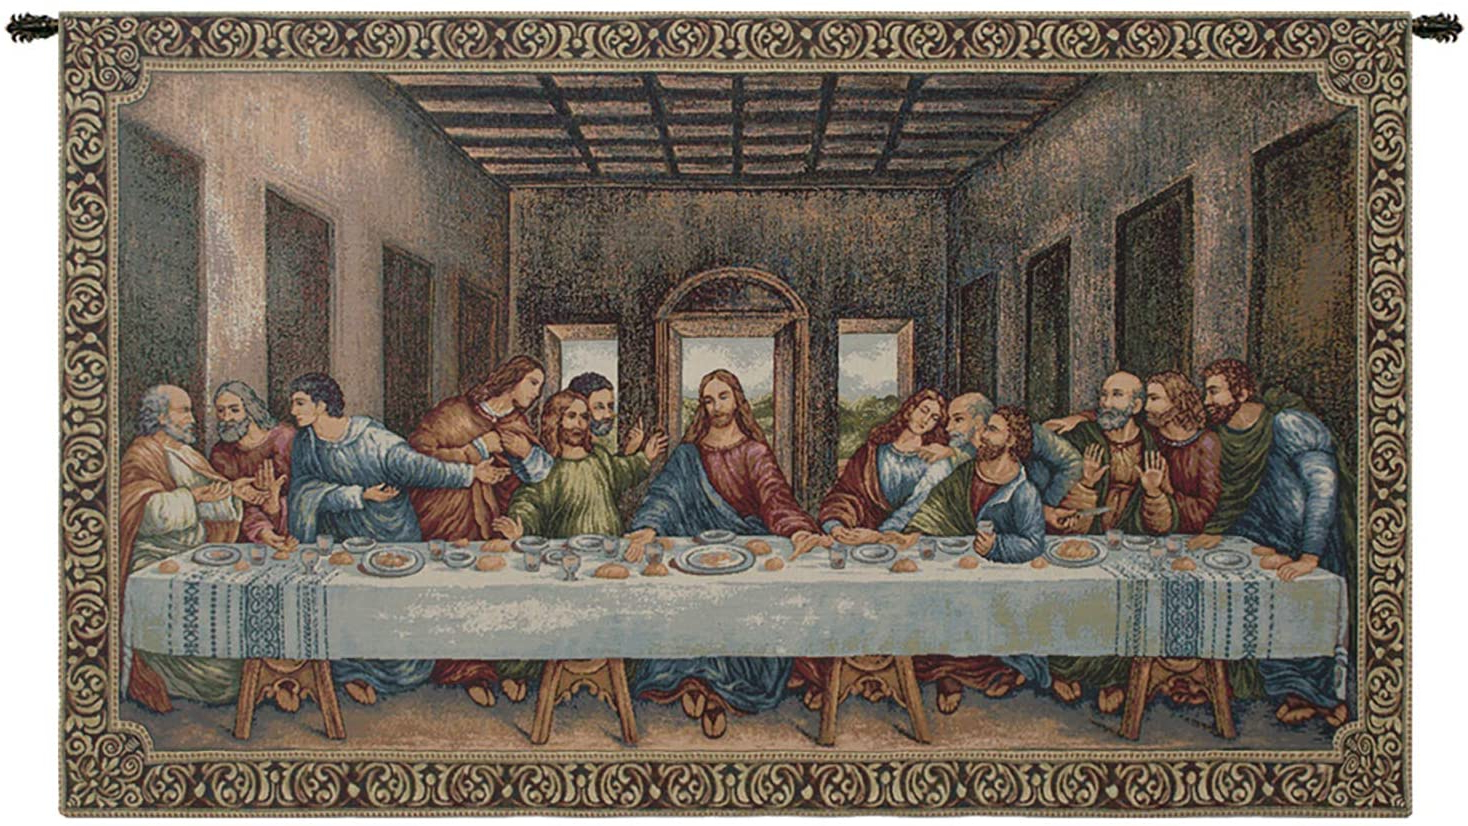 2020 Blended Fabric Leonardo Davinci The Last Supper Wall Hangings With Regard To Amazon: Charlotte Home Furnishings Inc (View 2 of 20)